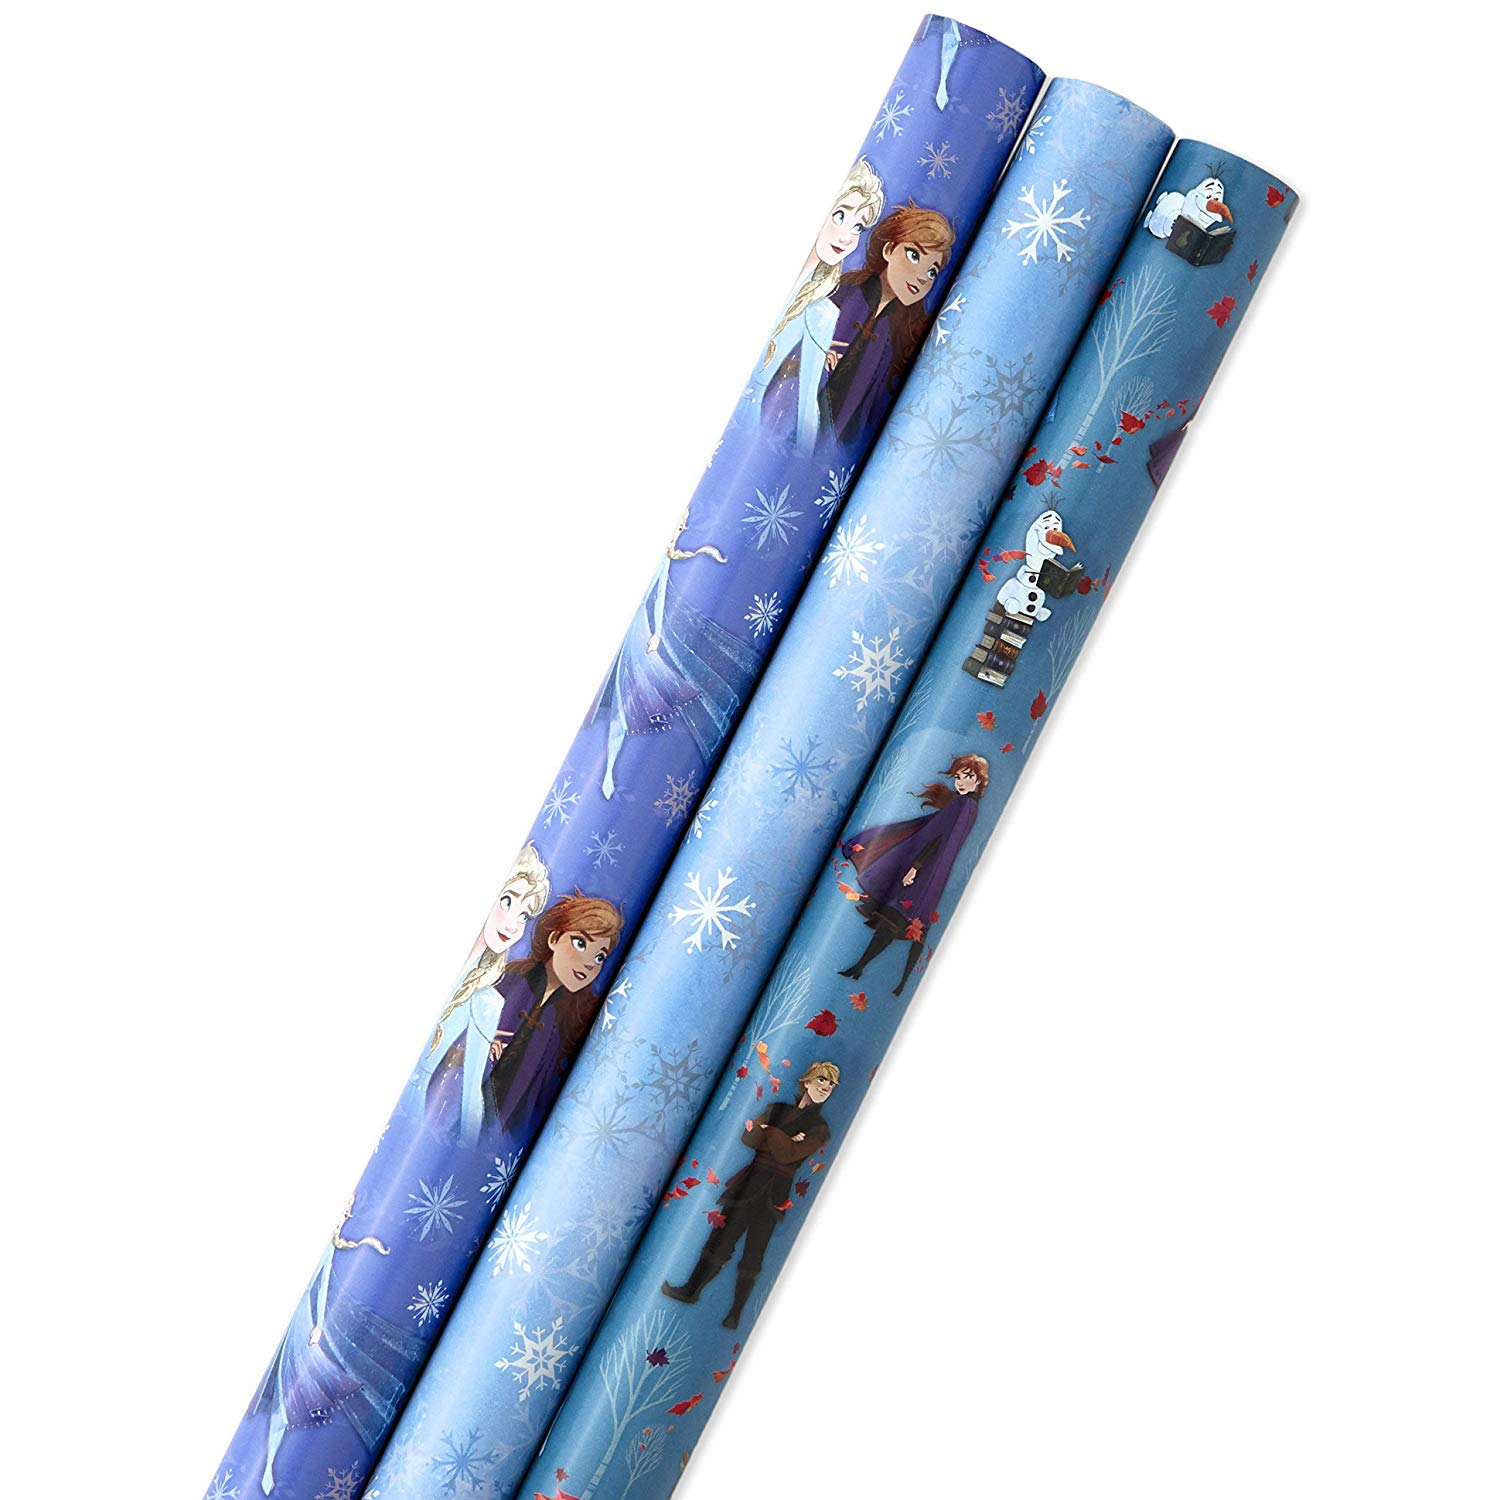 81Qa1 1z8jL. SL1500 - Hallmark Disney's Frozen 2 Wrapping Paper with Cut Lines (Pack of 3, 105 sq. ft. ttl.) for Birthdays, Christmas, Kids Parties or Any Occasion Color:Frozen 2 Characters